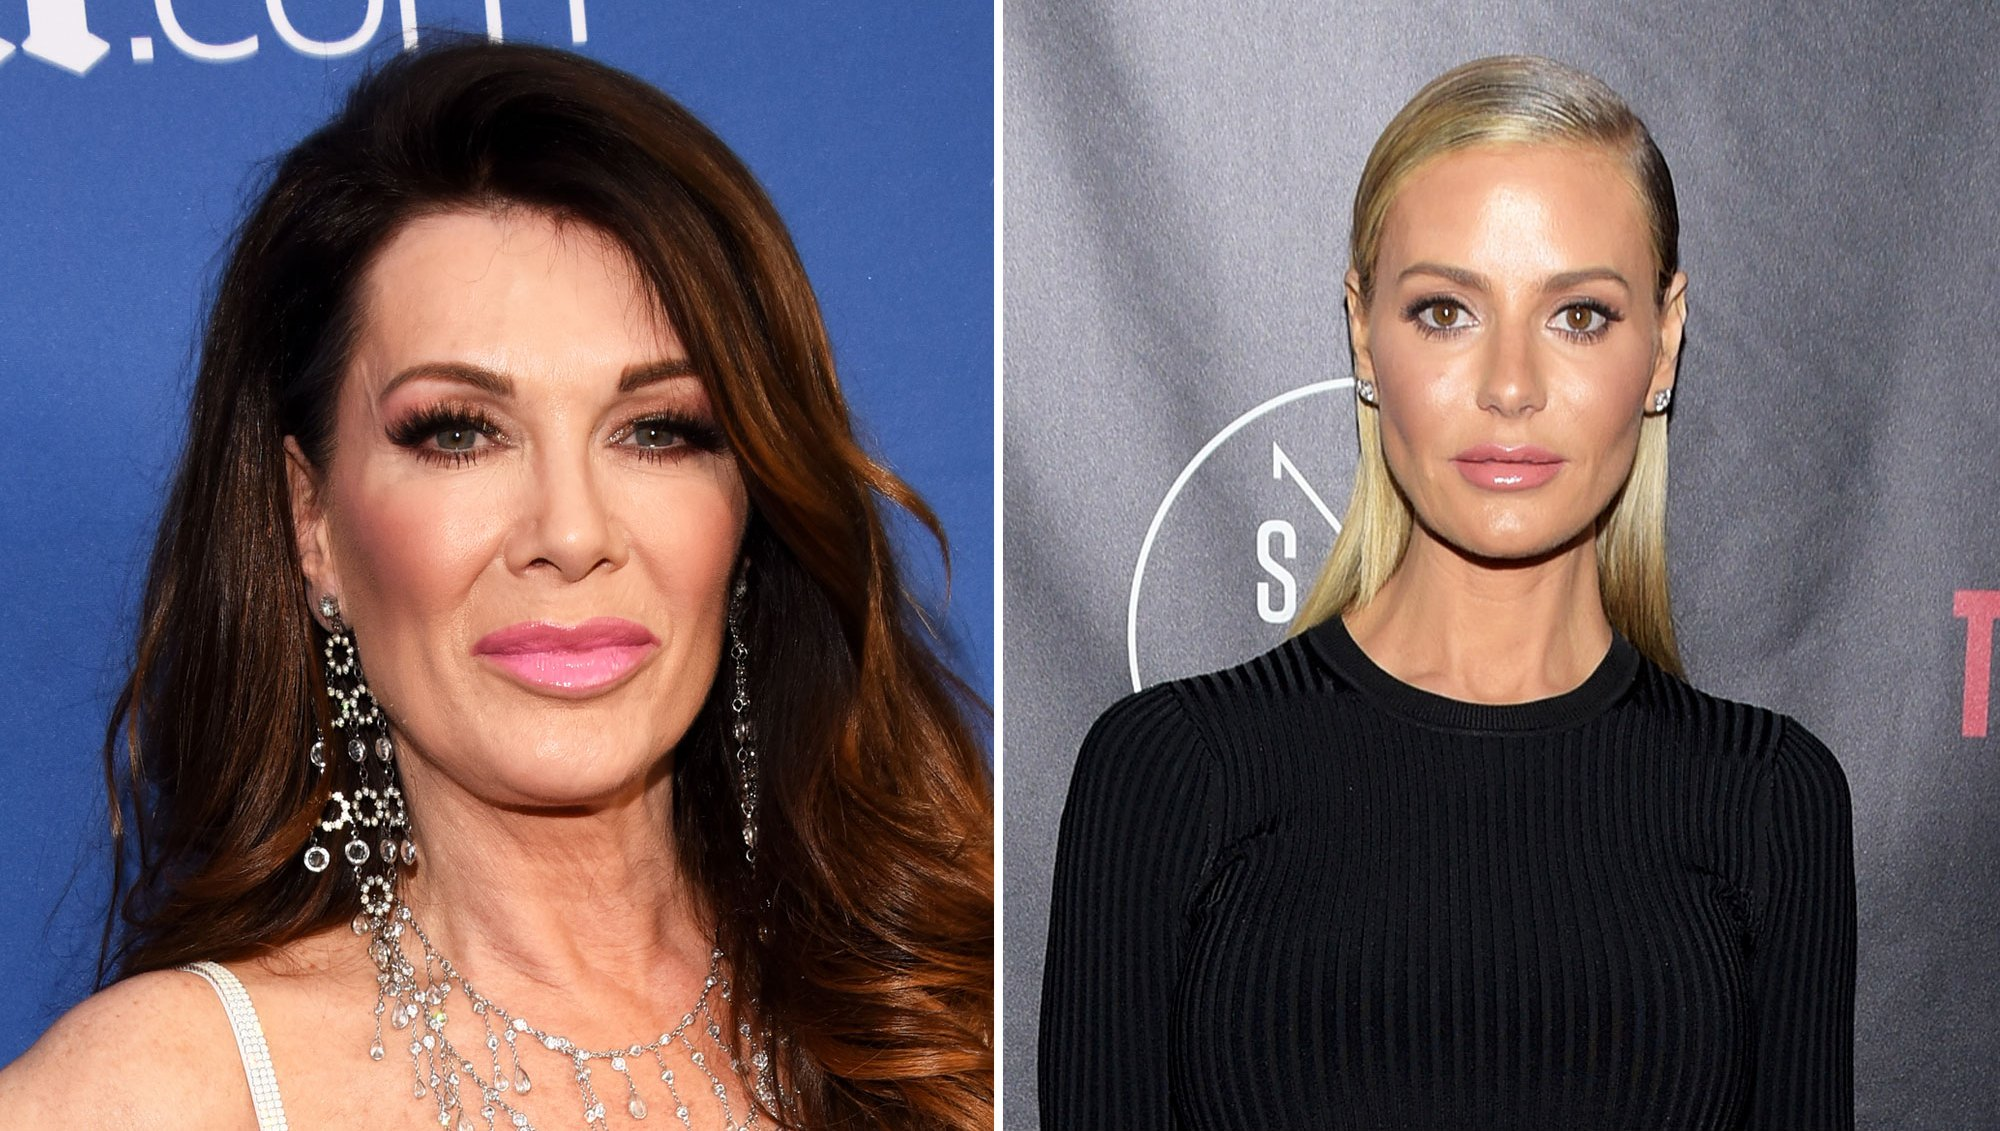 Lisa Vanderpump, Dorit Kemsley and Real Housewives of Beverly Hills Cast